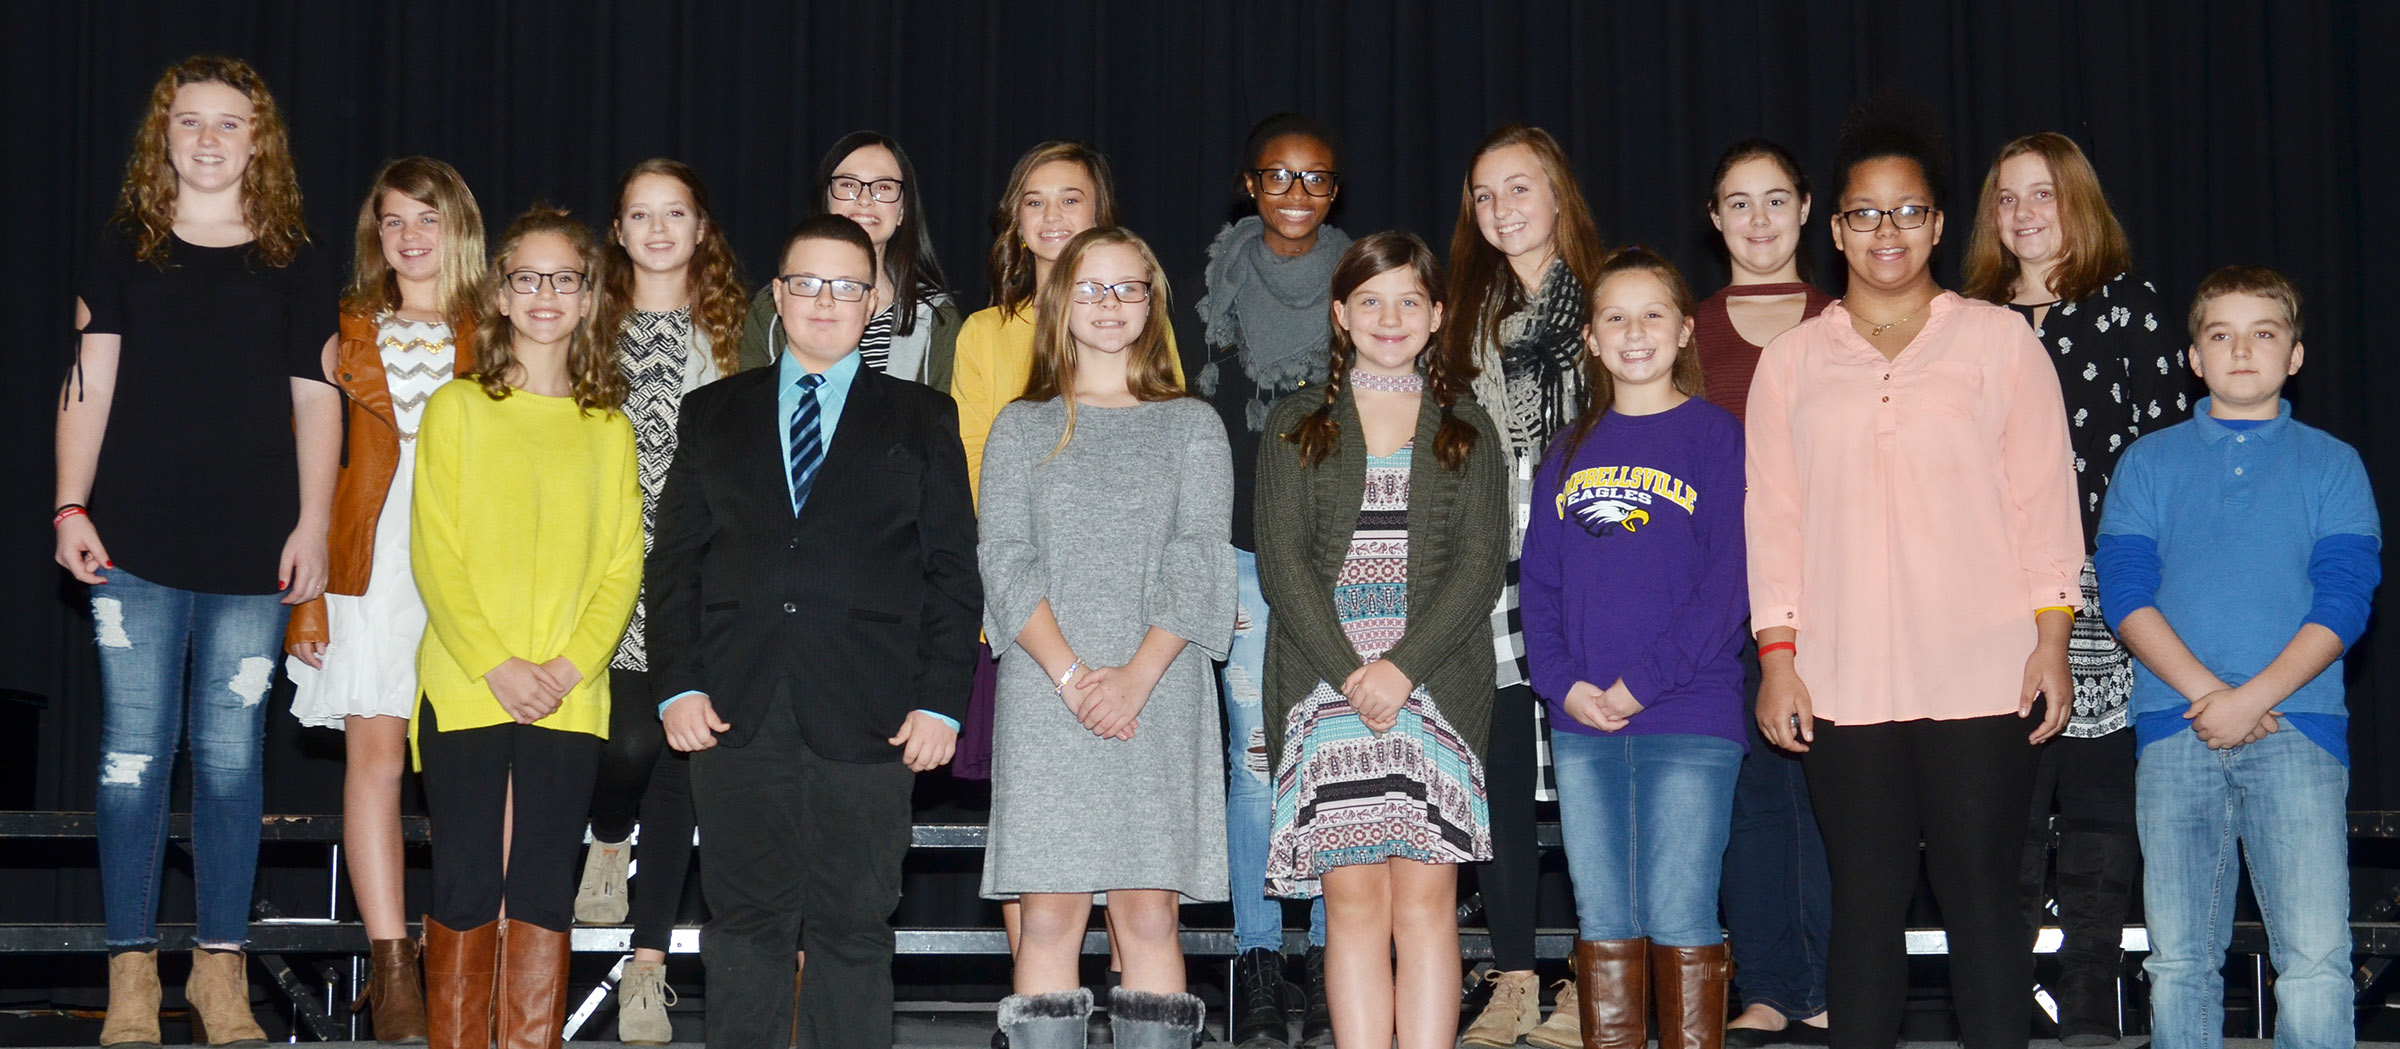 CMS Beta members attending the induction ceremony on Sunday, Nov. 19, include, from left, front, sixth-graders Chloe Thompson, Daniel Caton and Karlie Cox, seventh-grader Mikaela Scharbrough and sixth-graders Mollie Bailey, Kiara Graves and Nathan McFarland. Back row, eighth-grader Abby Brisko, sixth-grader Aryanna Britton, Beta member and eighth-grader Rylee Petett, vice president Sarah Adkins, treasurer Tayler Thompson, reporter Bri Gowdy, secretary Lainey Watson and new members Brianna Dobson and Lexi Garvin, sixth-graders.